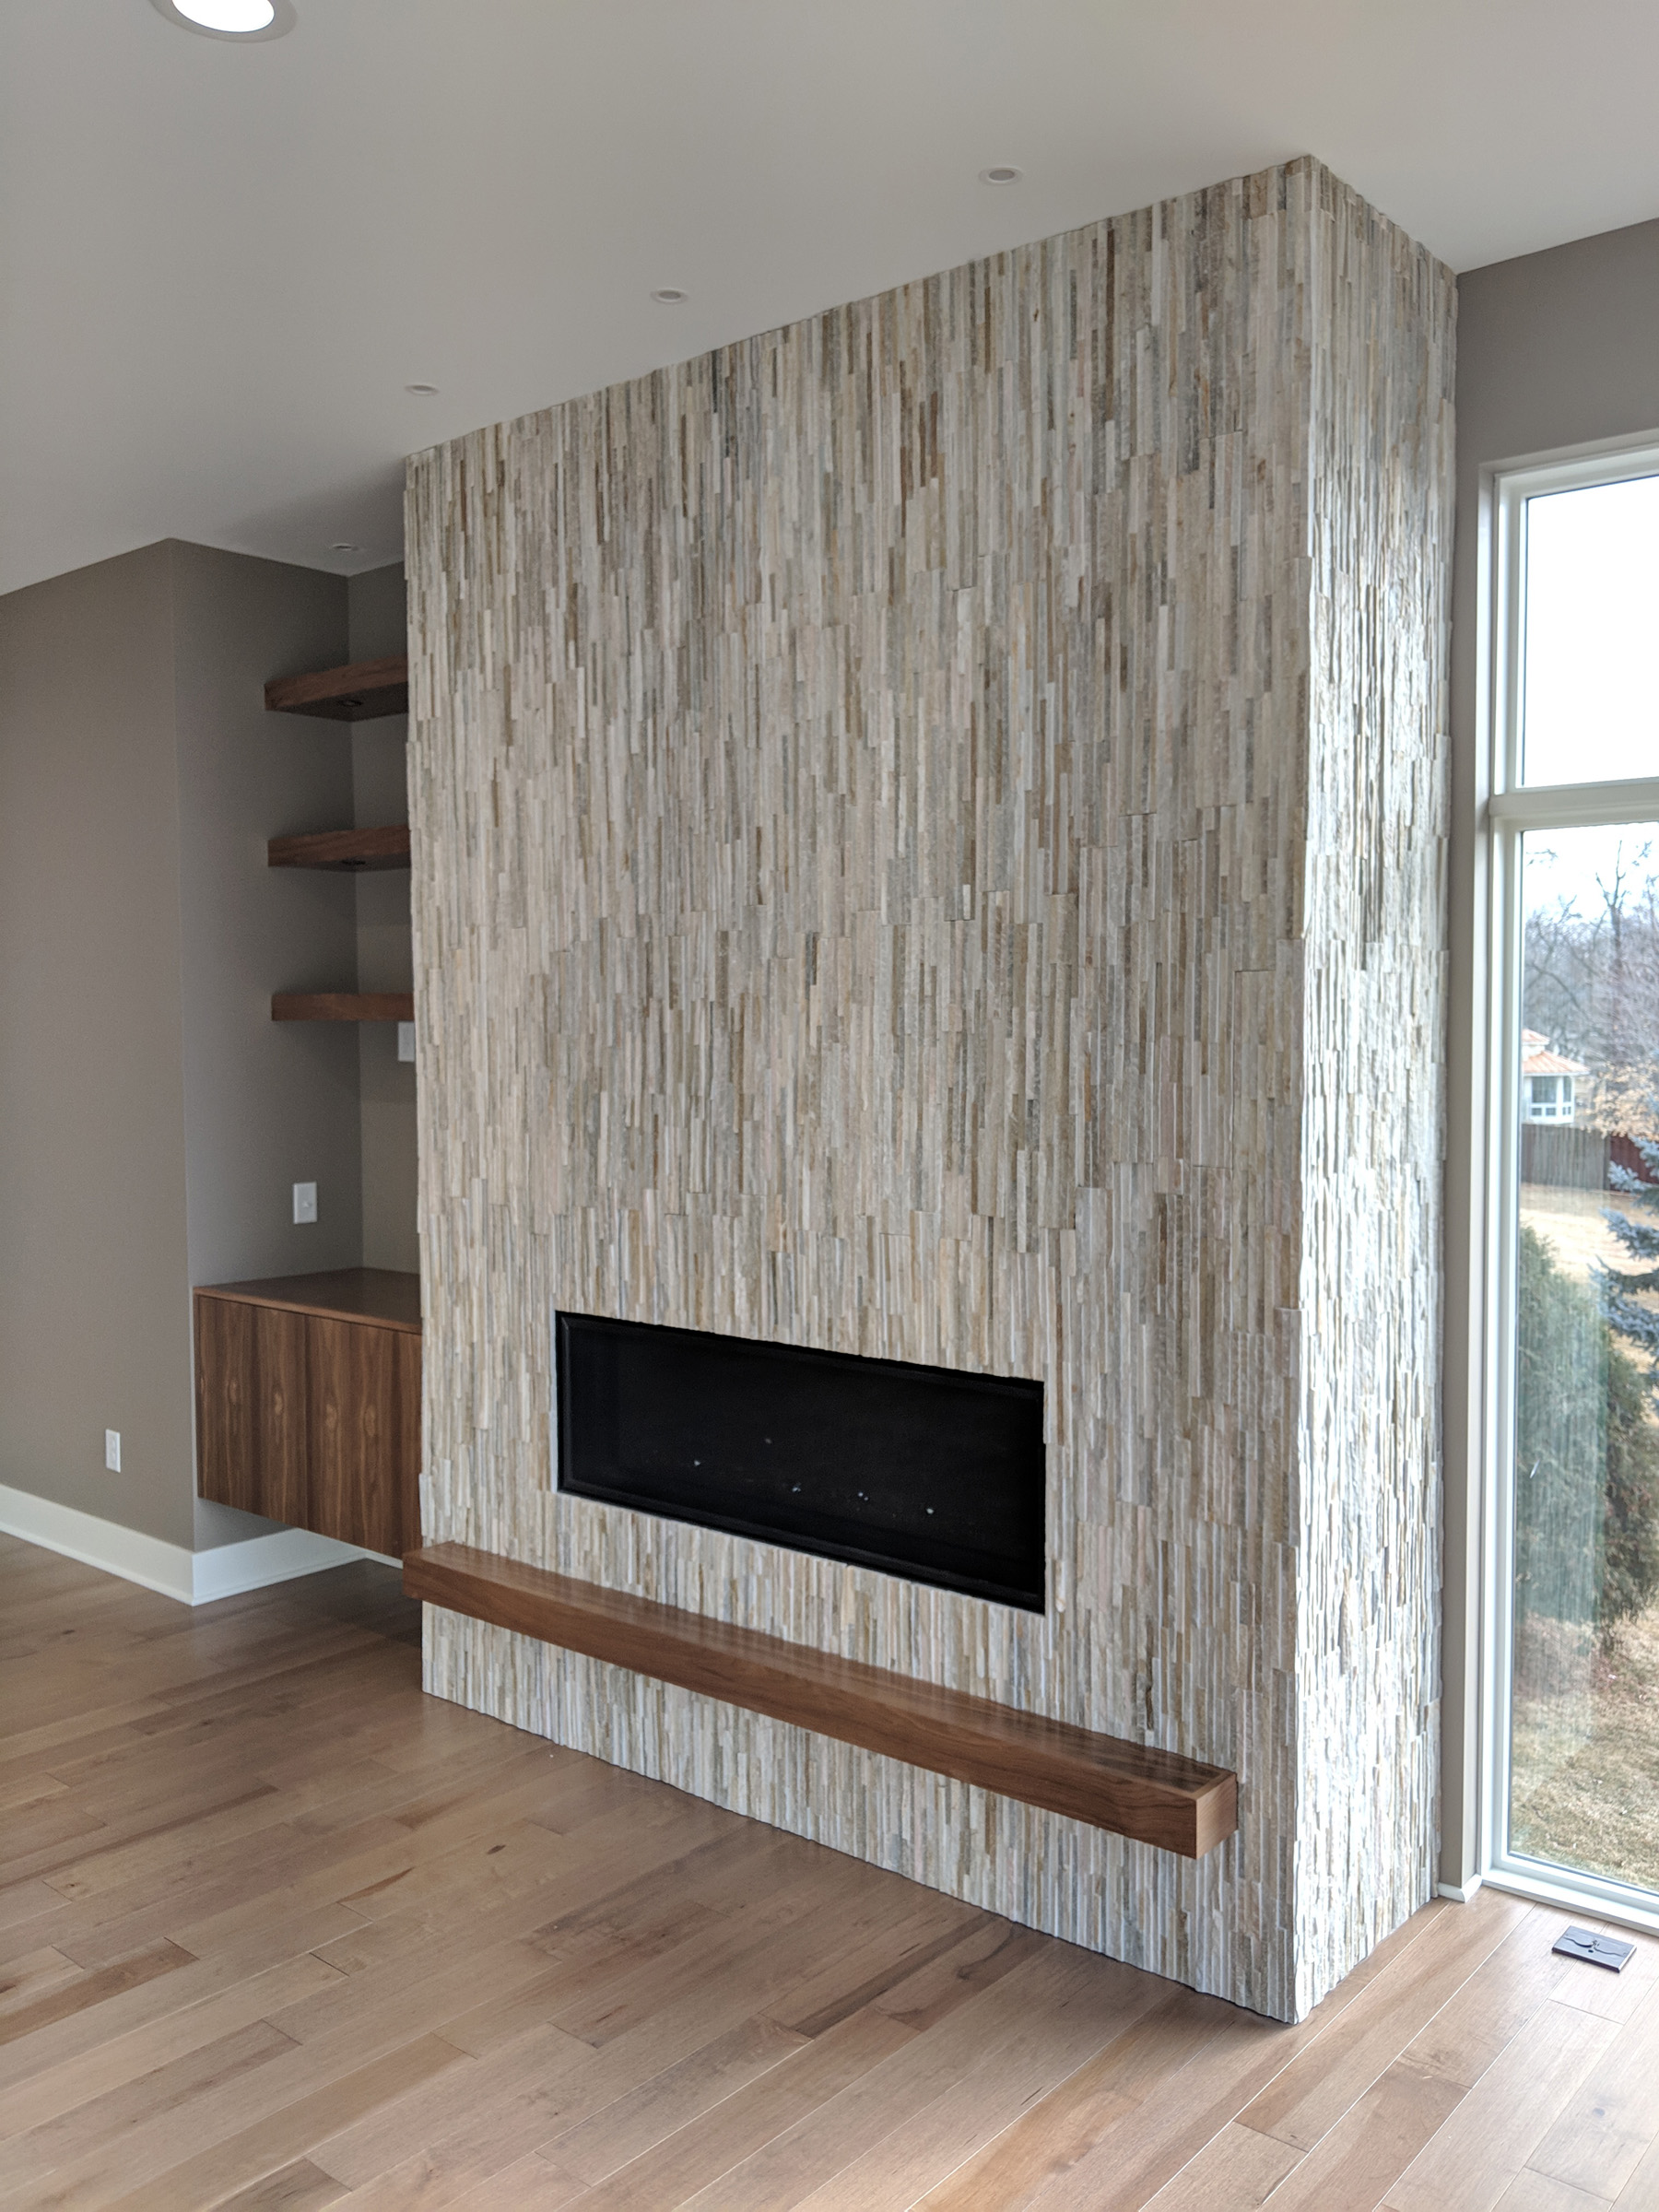 Stone facade fireplace with mantel